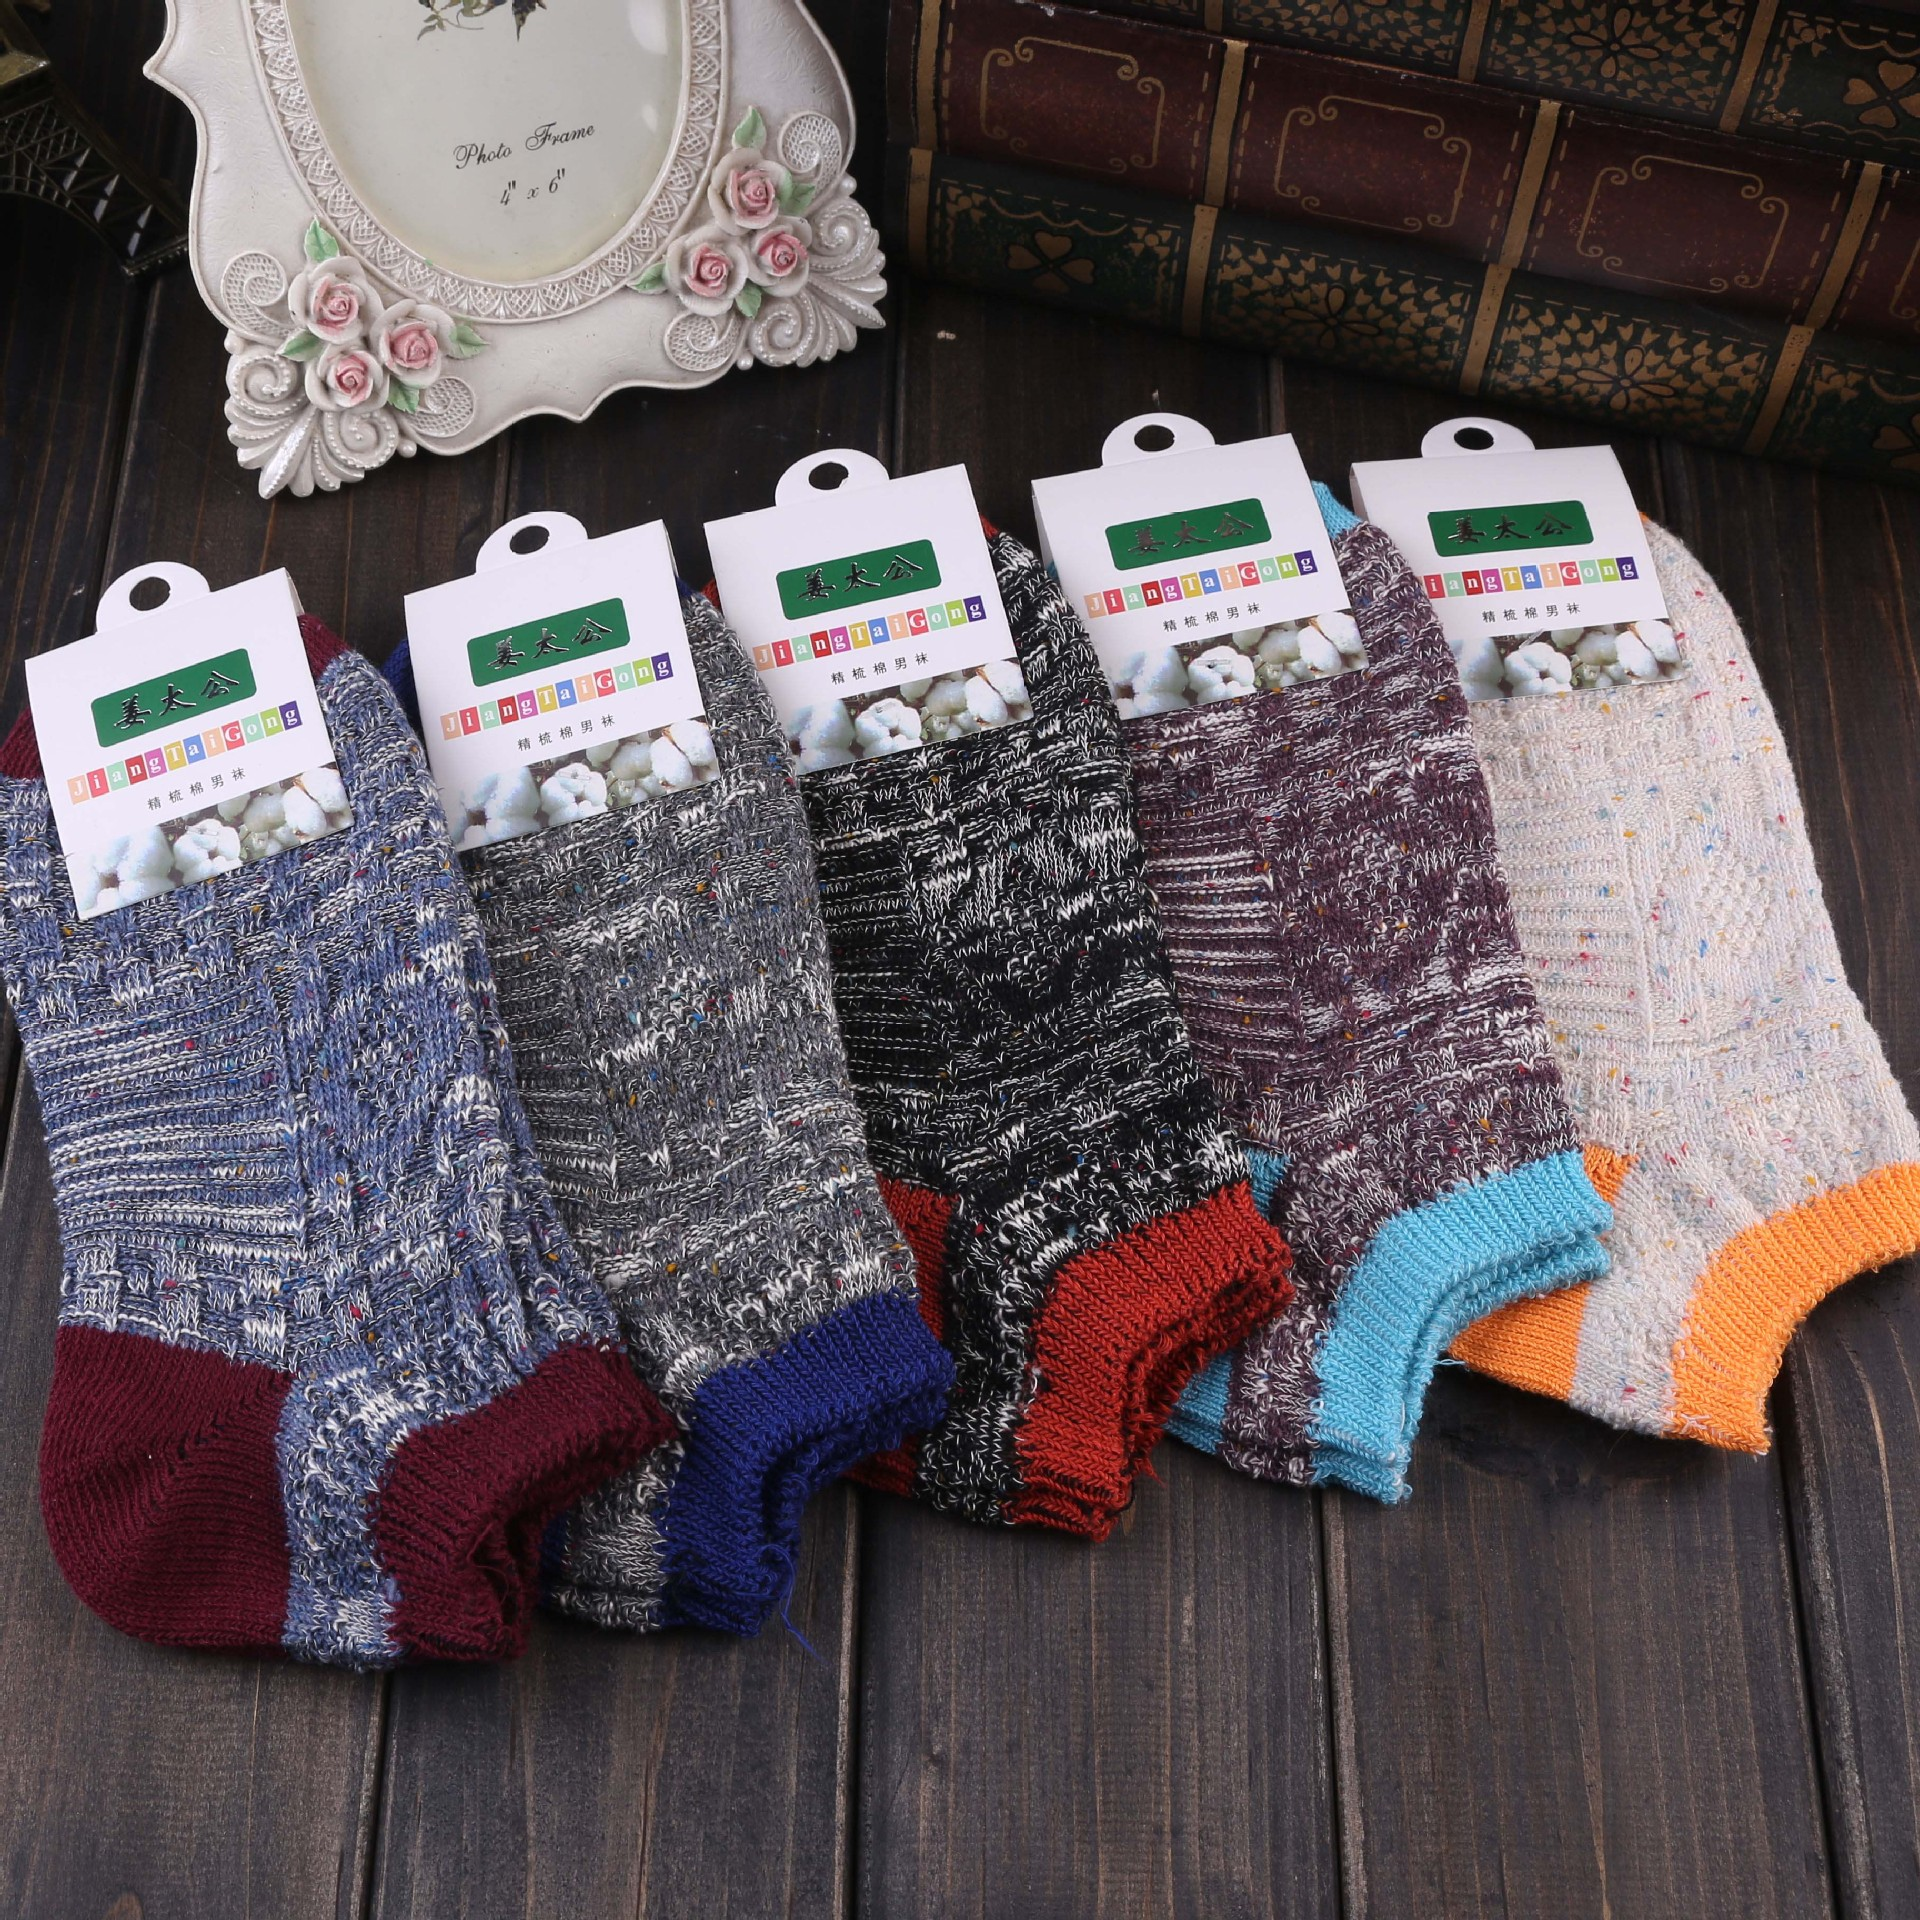 10Pairs/Lot New spring and summer men's socks and stealth Skull Pattern personality socks cotton socks wholesale